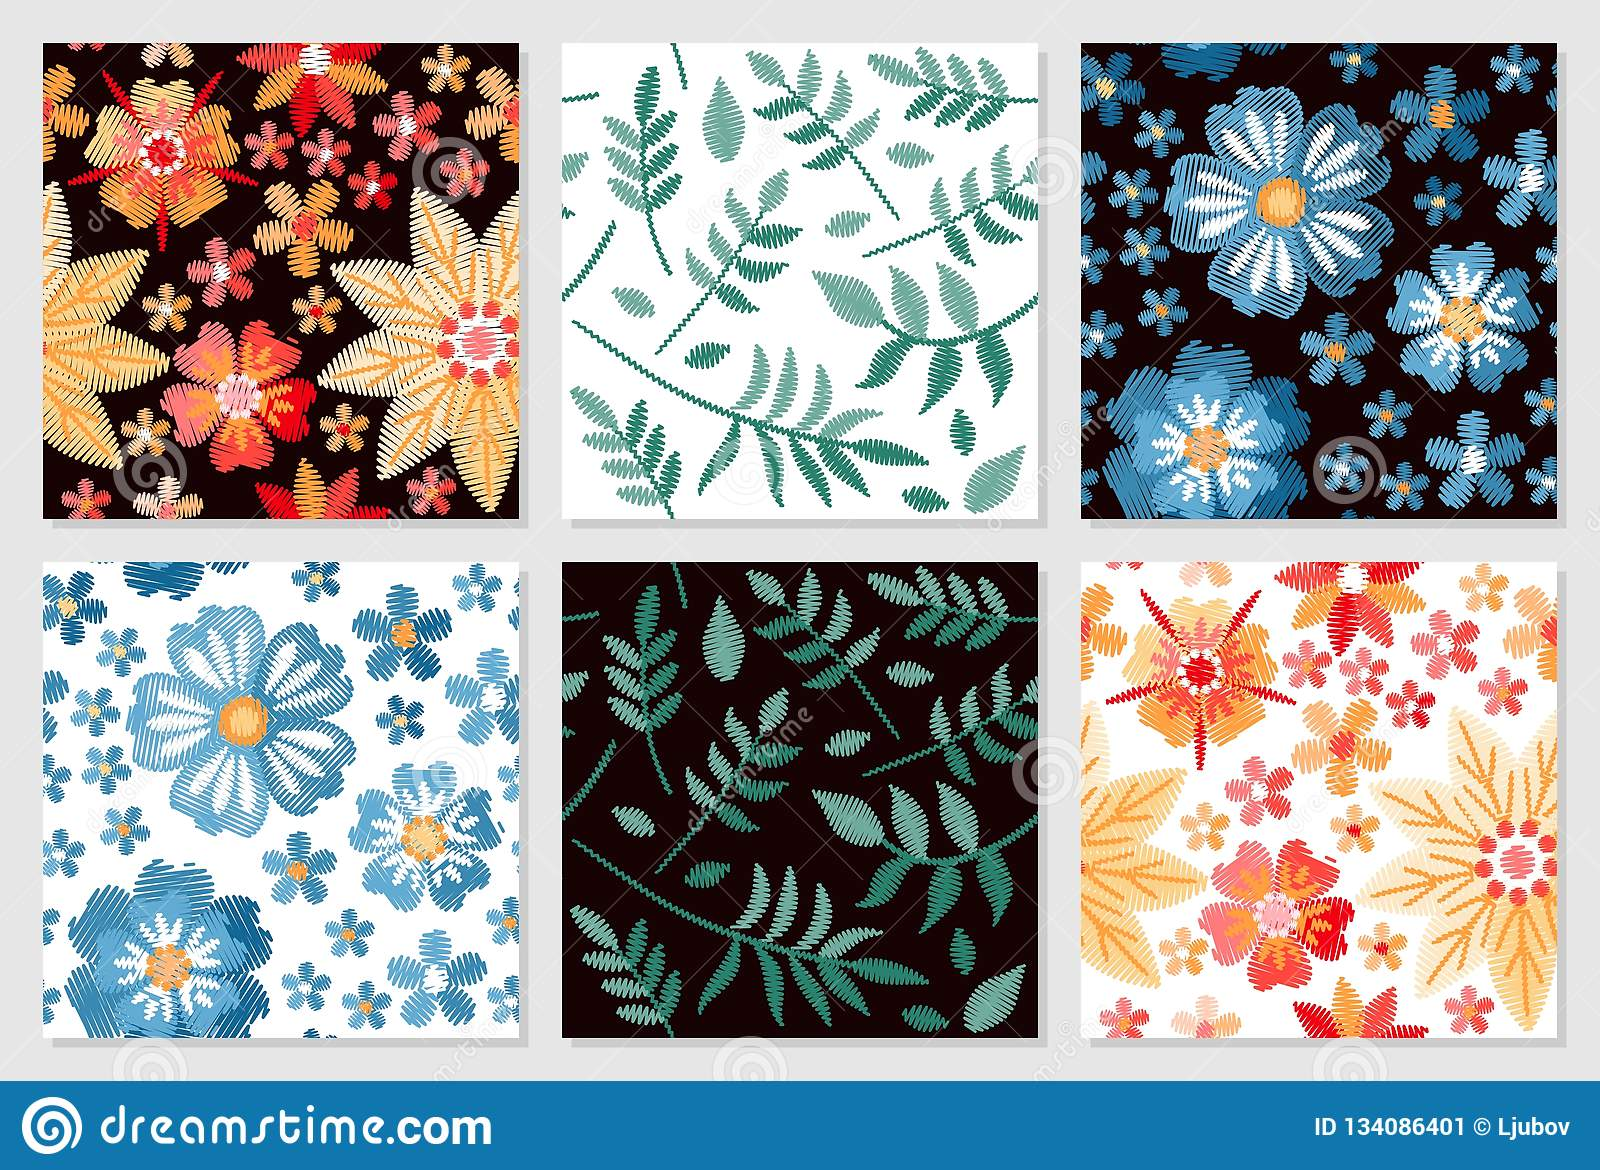 Set of floral seamless patterns. Embroidery of flowers and leaves on white and black background.